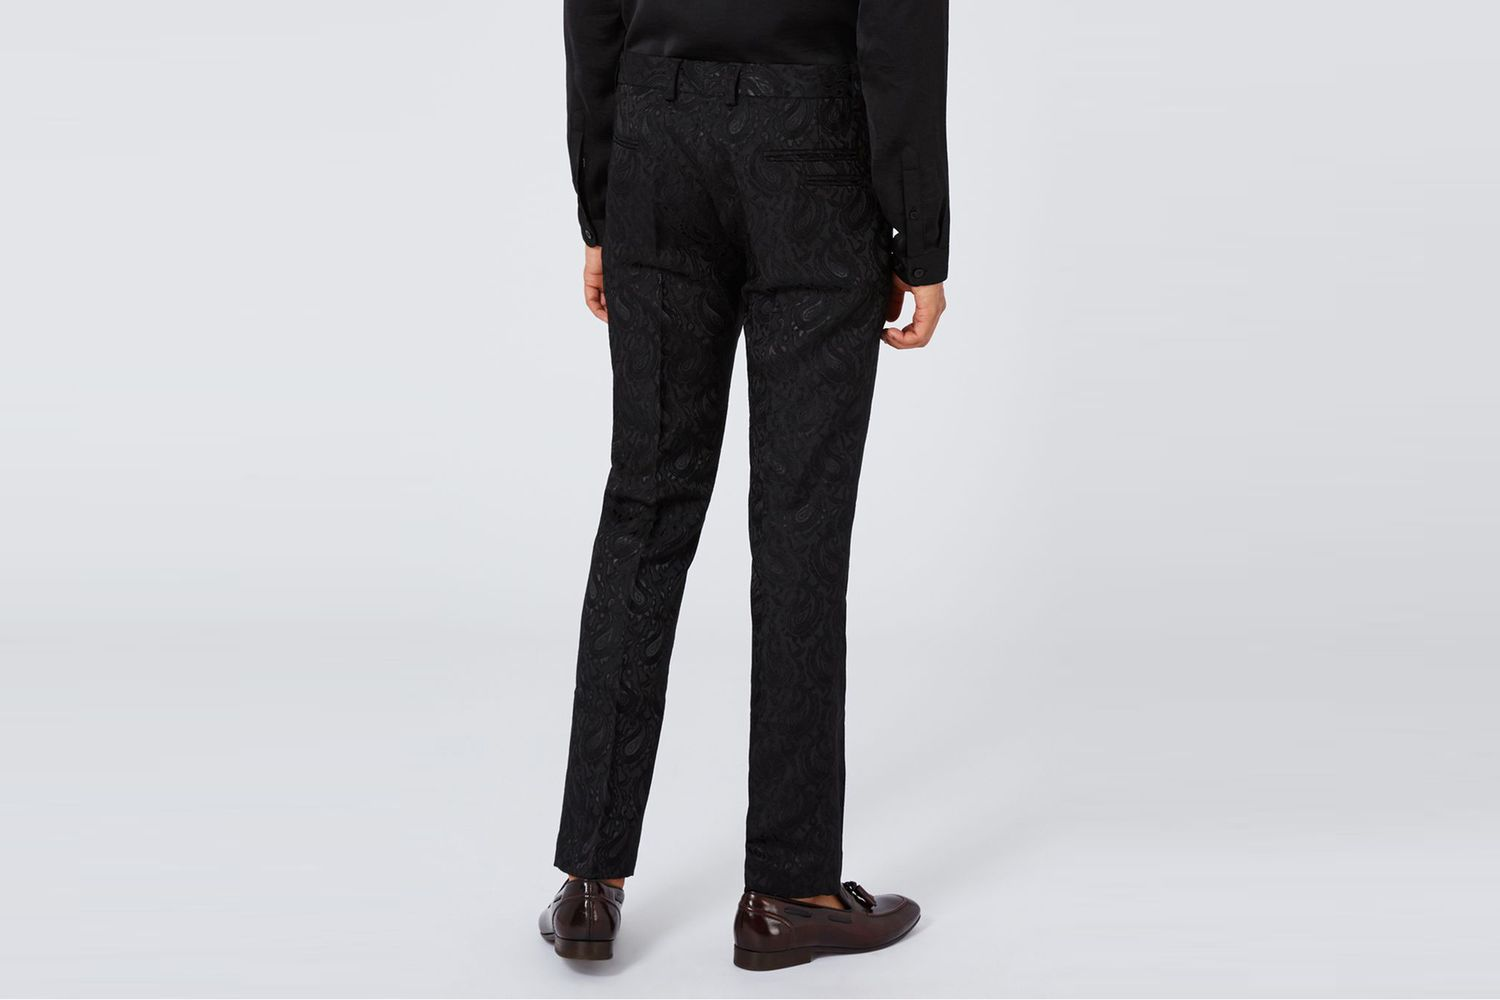 Patterned Suit Trousers